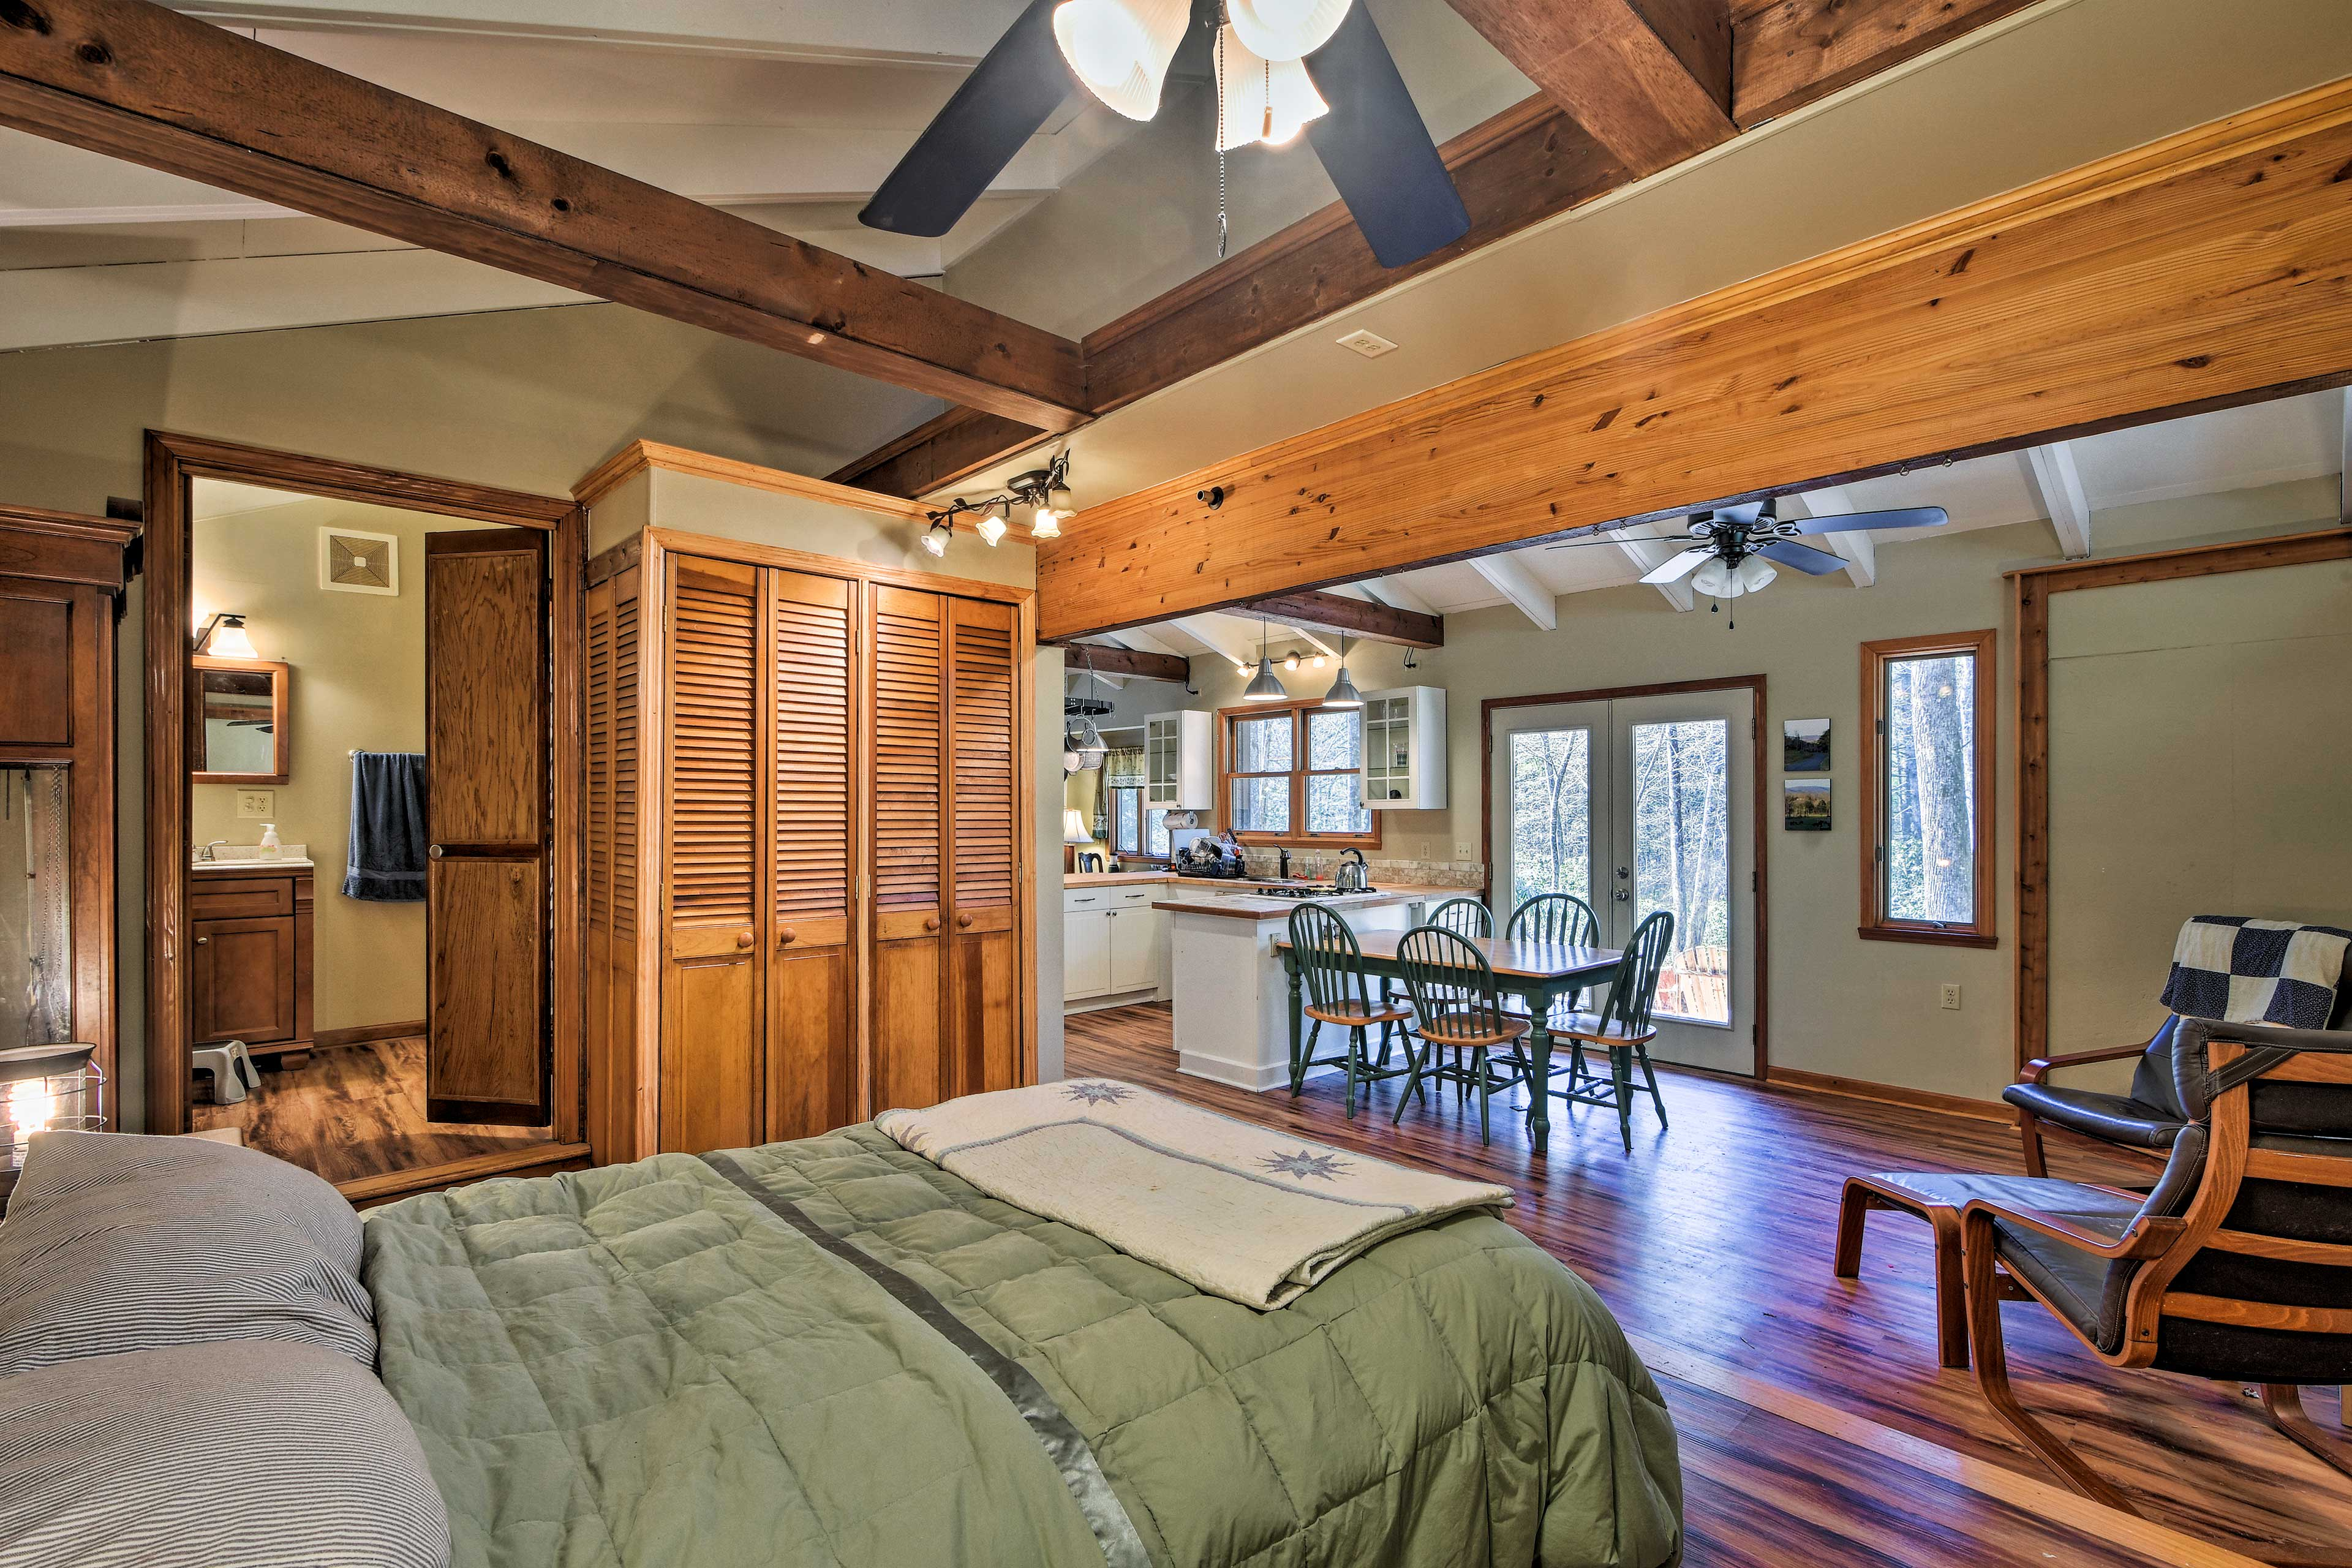 The king-sized bed awaits in it's own alcove off the main space.